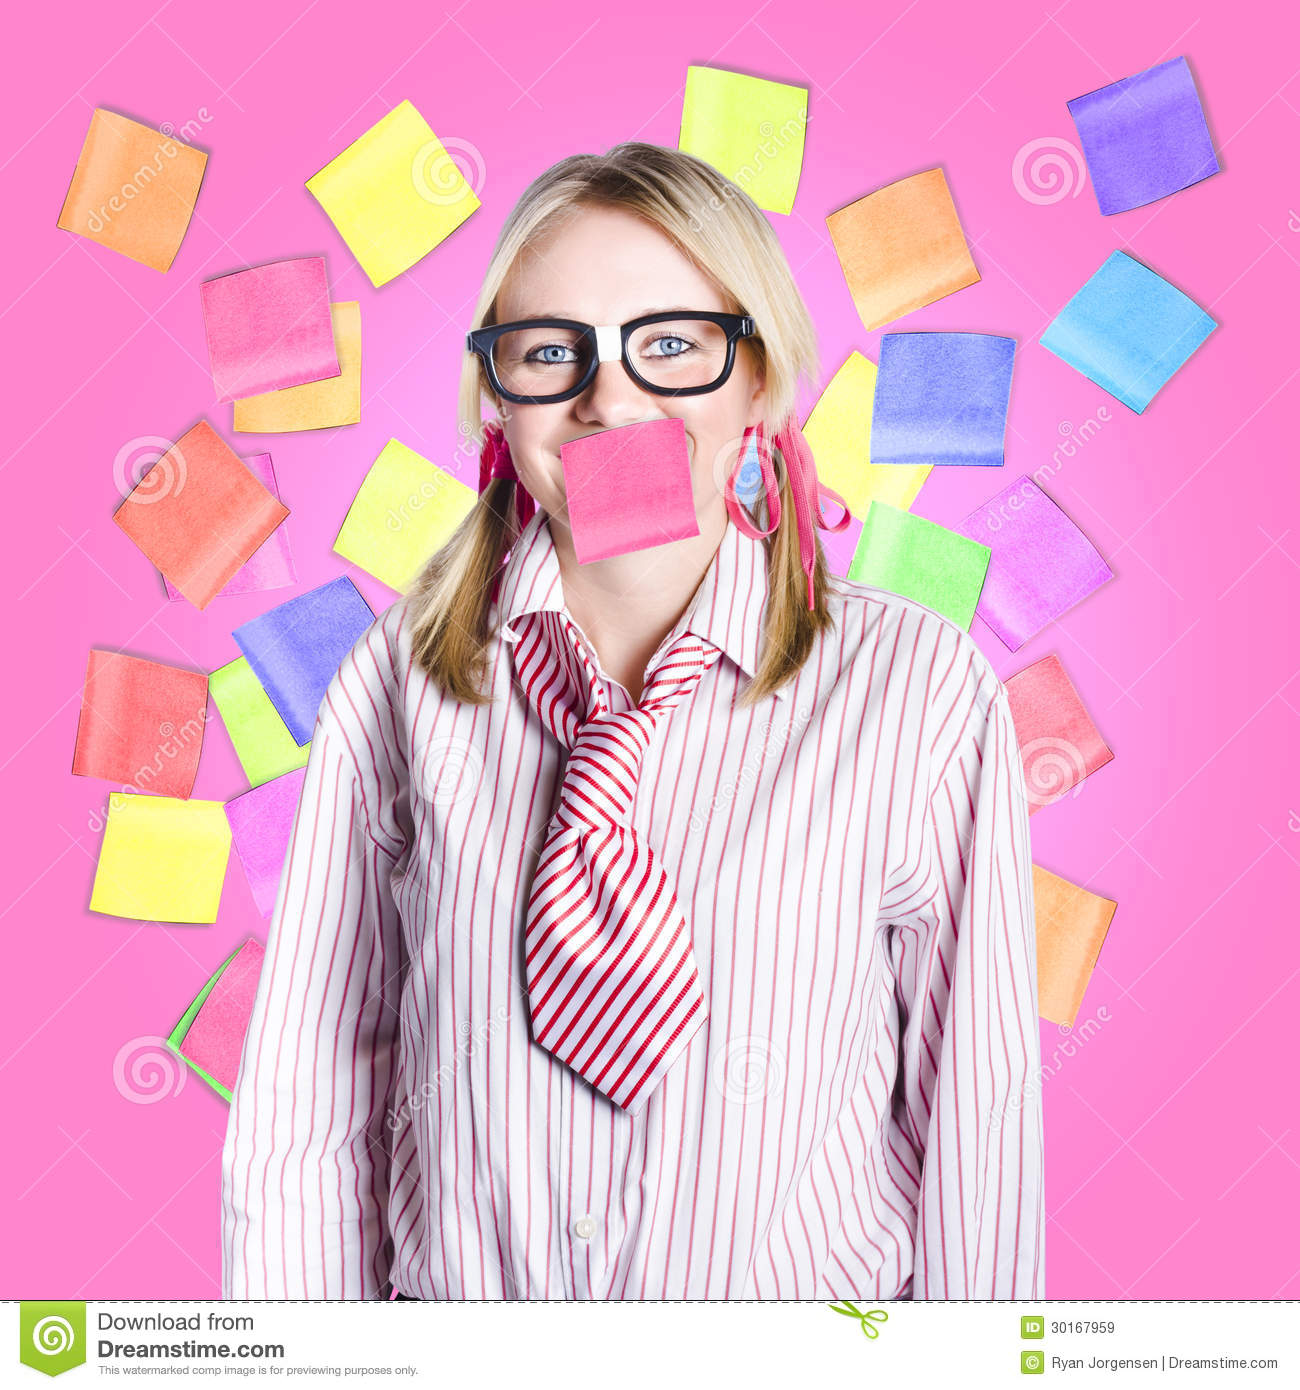 Admin clerk clipart banner freeuse library Female Admin Clerk Swamped With Multitasking Jobs Royalty Free ... banner freeuse library